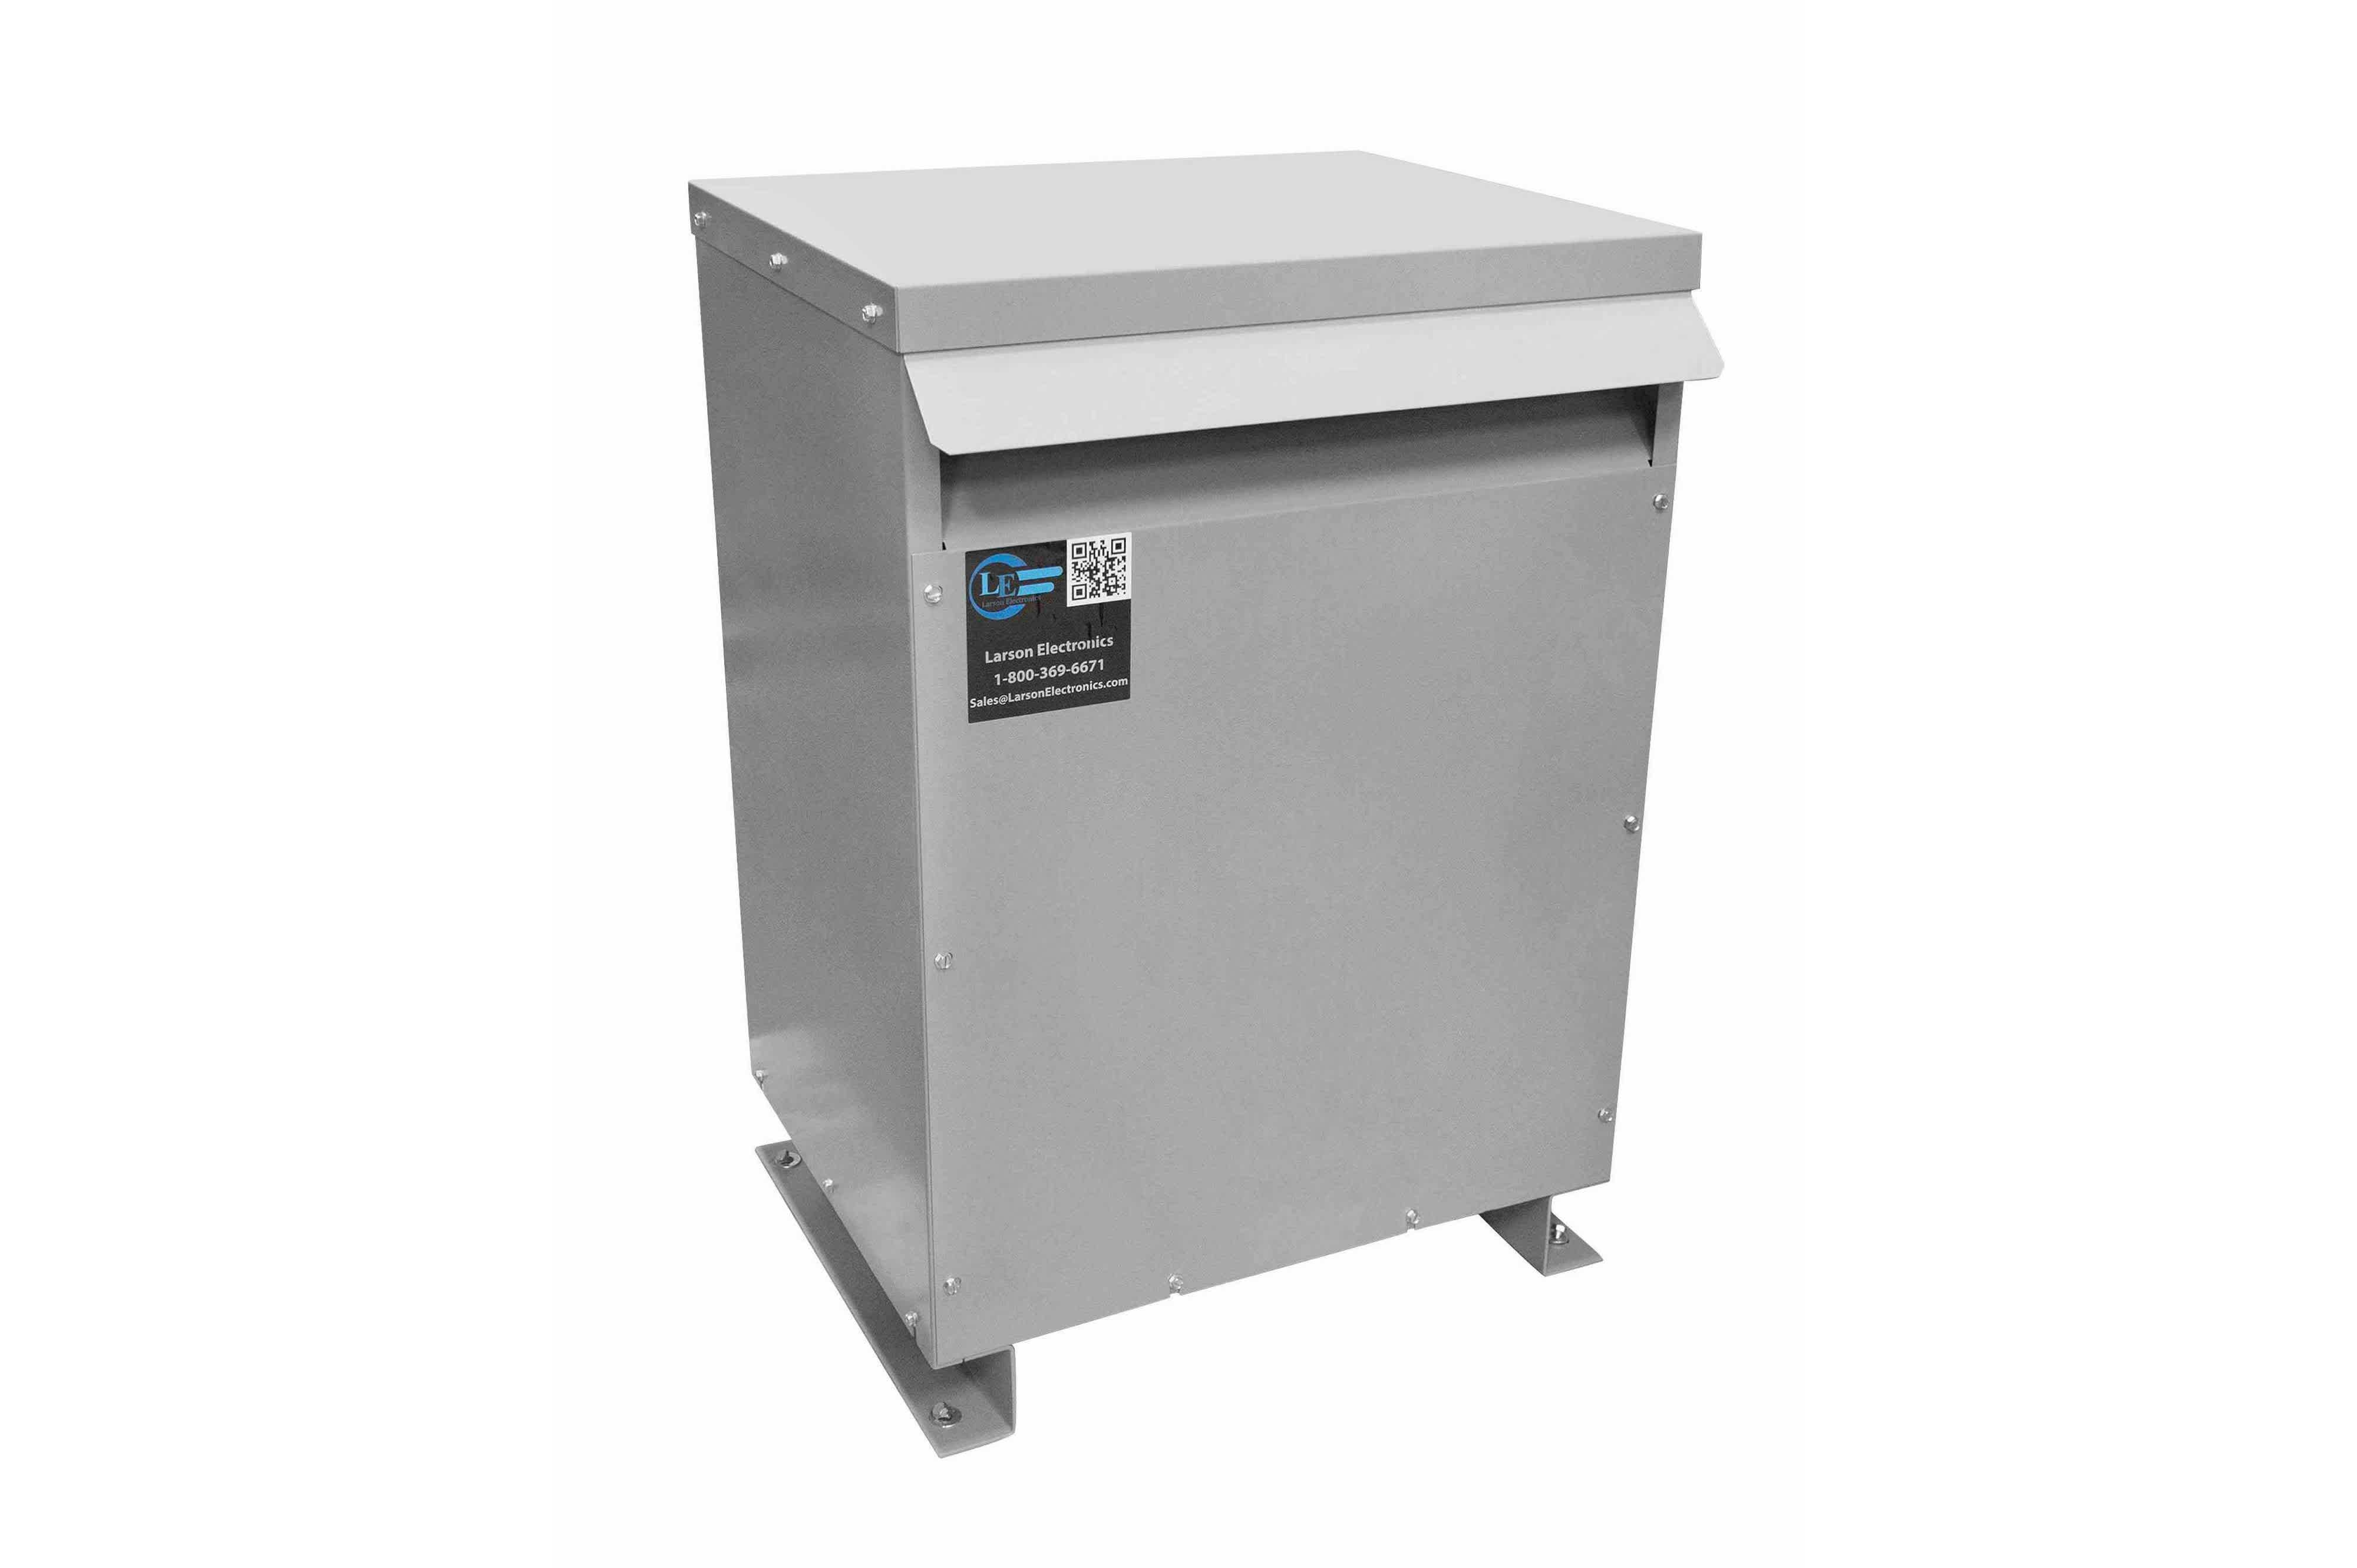 40 kVA 3PH Isolation Transformer, 575V Delta Primary, 380V Delta Secondary, N3R, Ventilated, 60 Hz